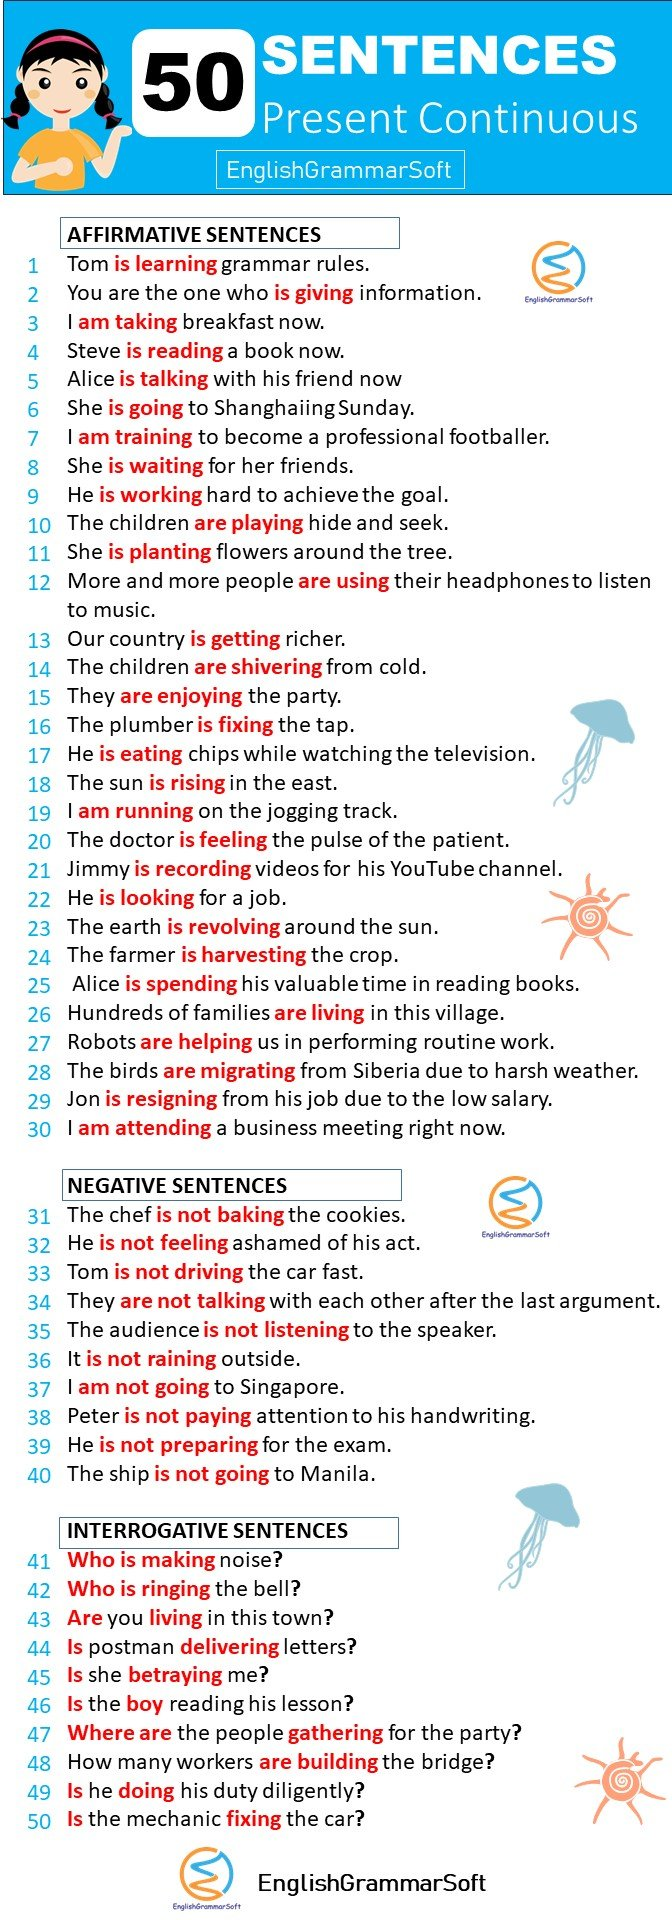 50 Sentences of present continuous tense